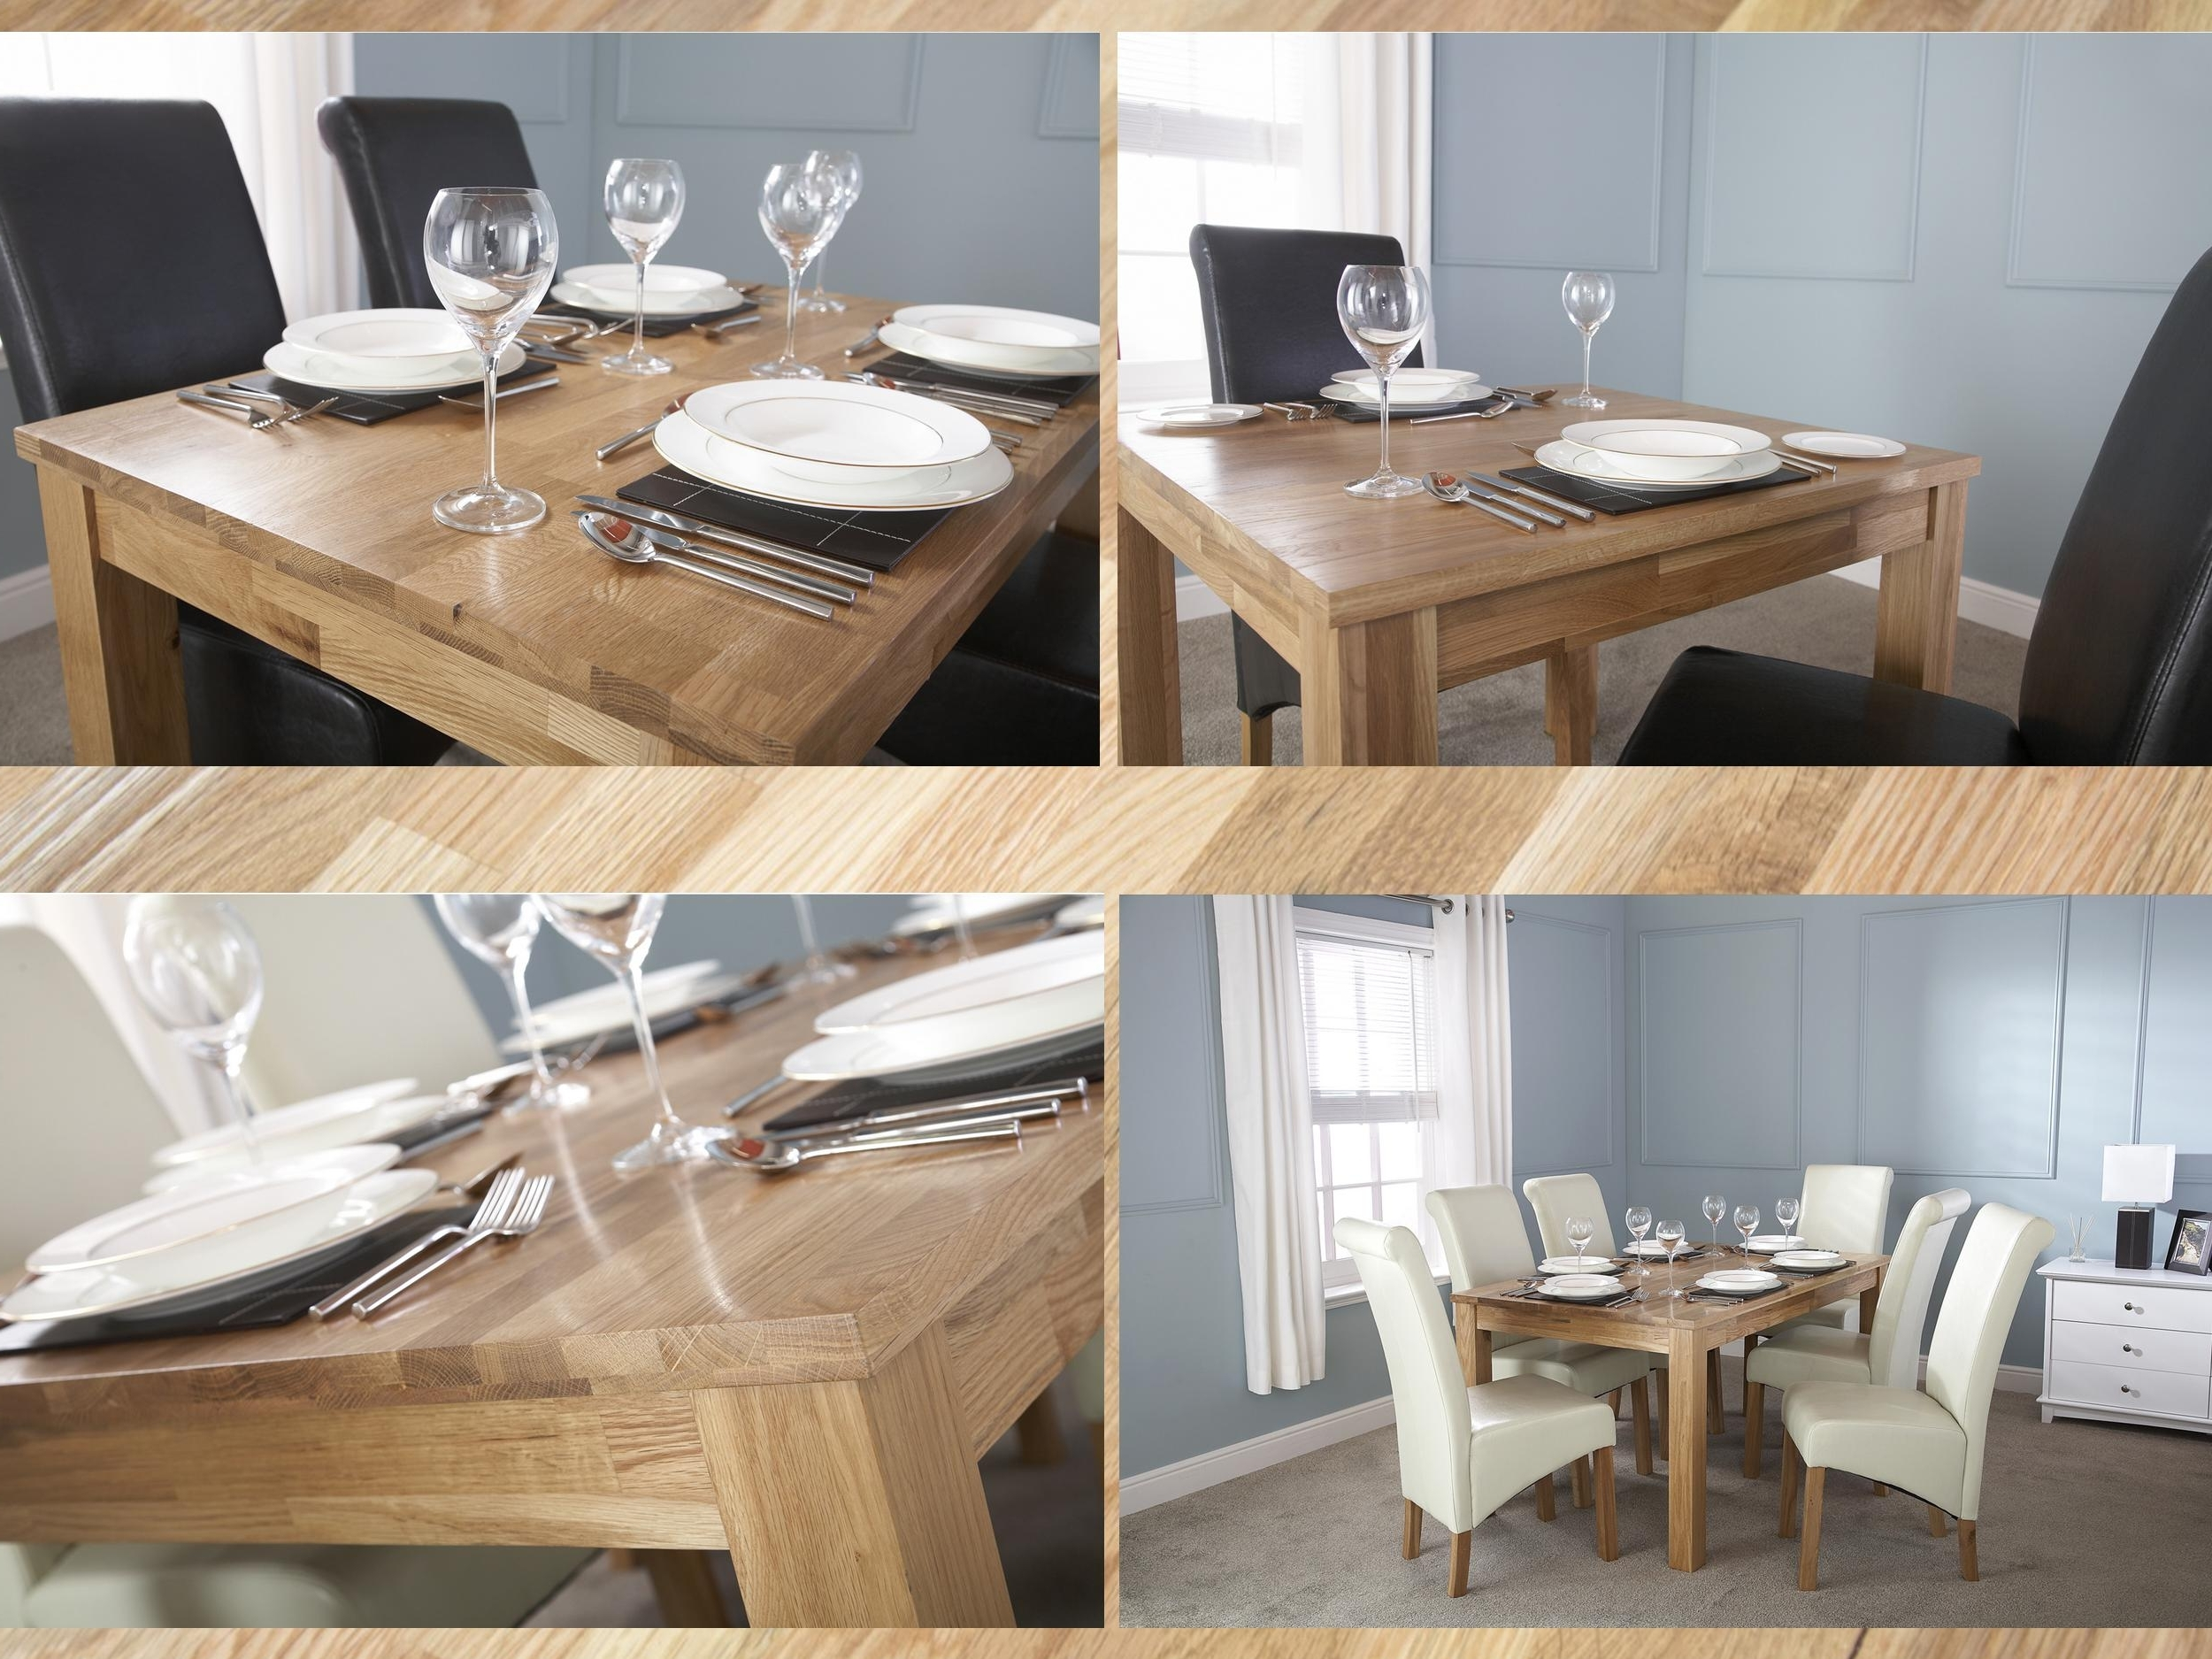 Fashionable Solid Oak Dining Table – Butchers Block Top Design – 3Ft 4Ft 5Ft With 3Ft Dining Tables (View 11 of 25)